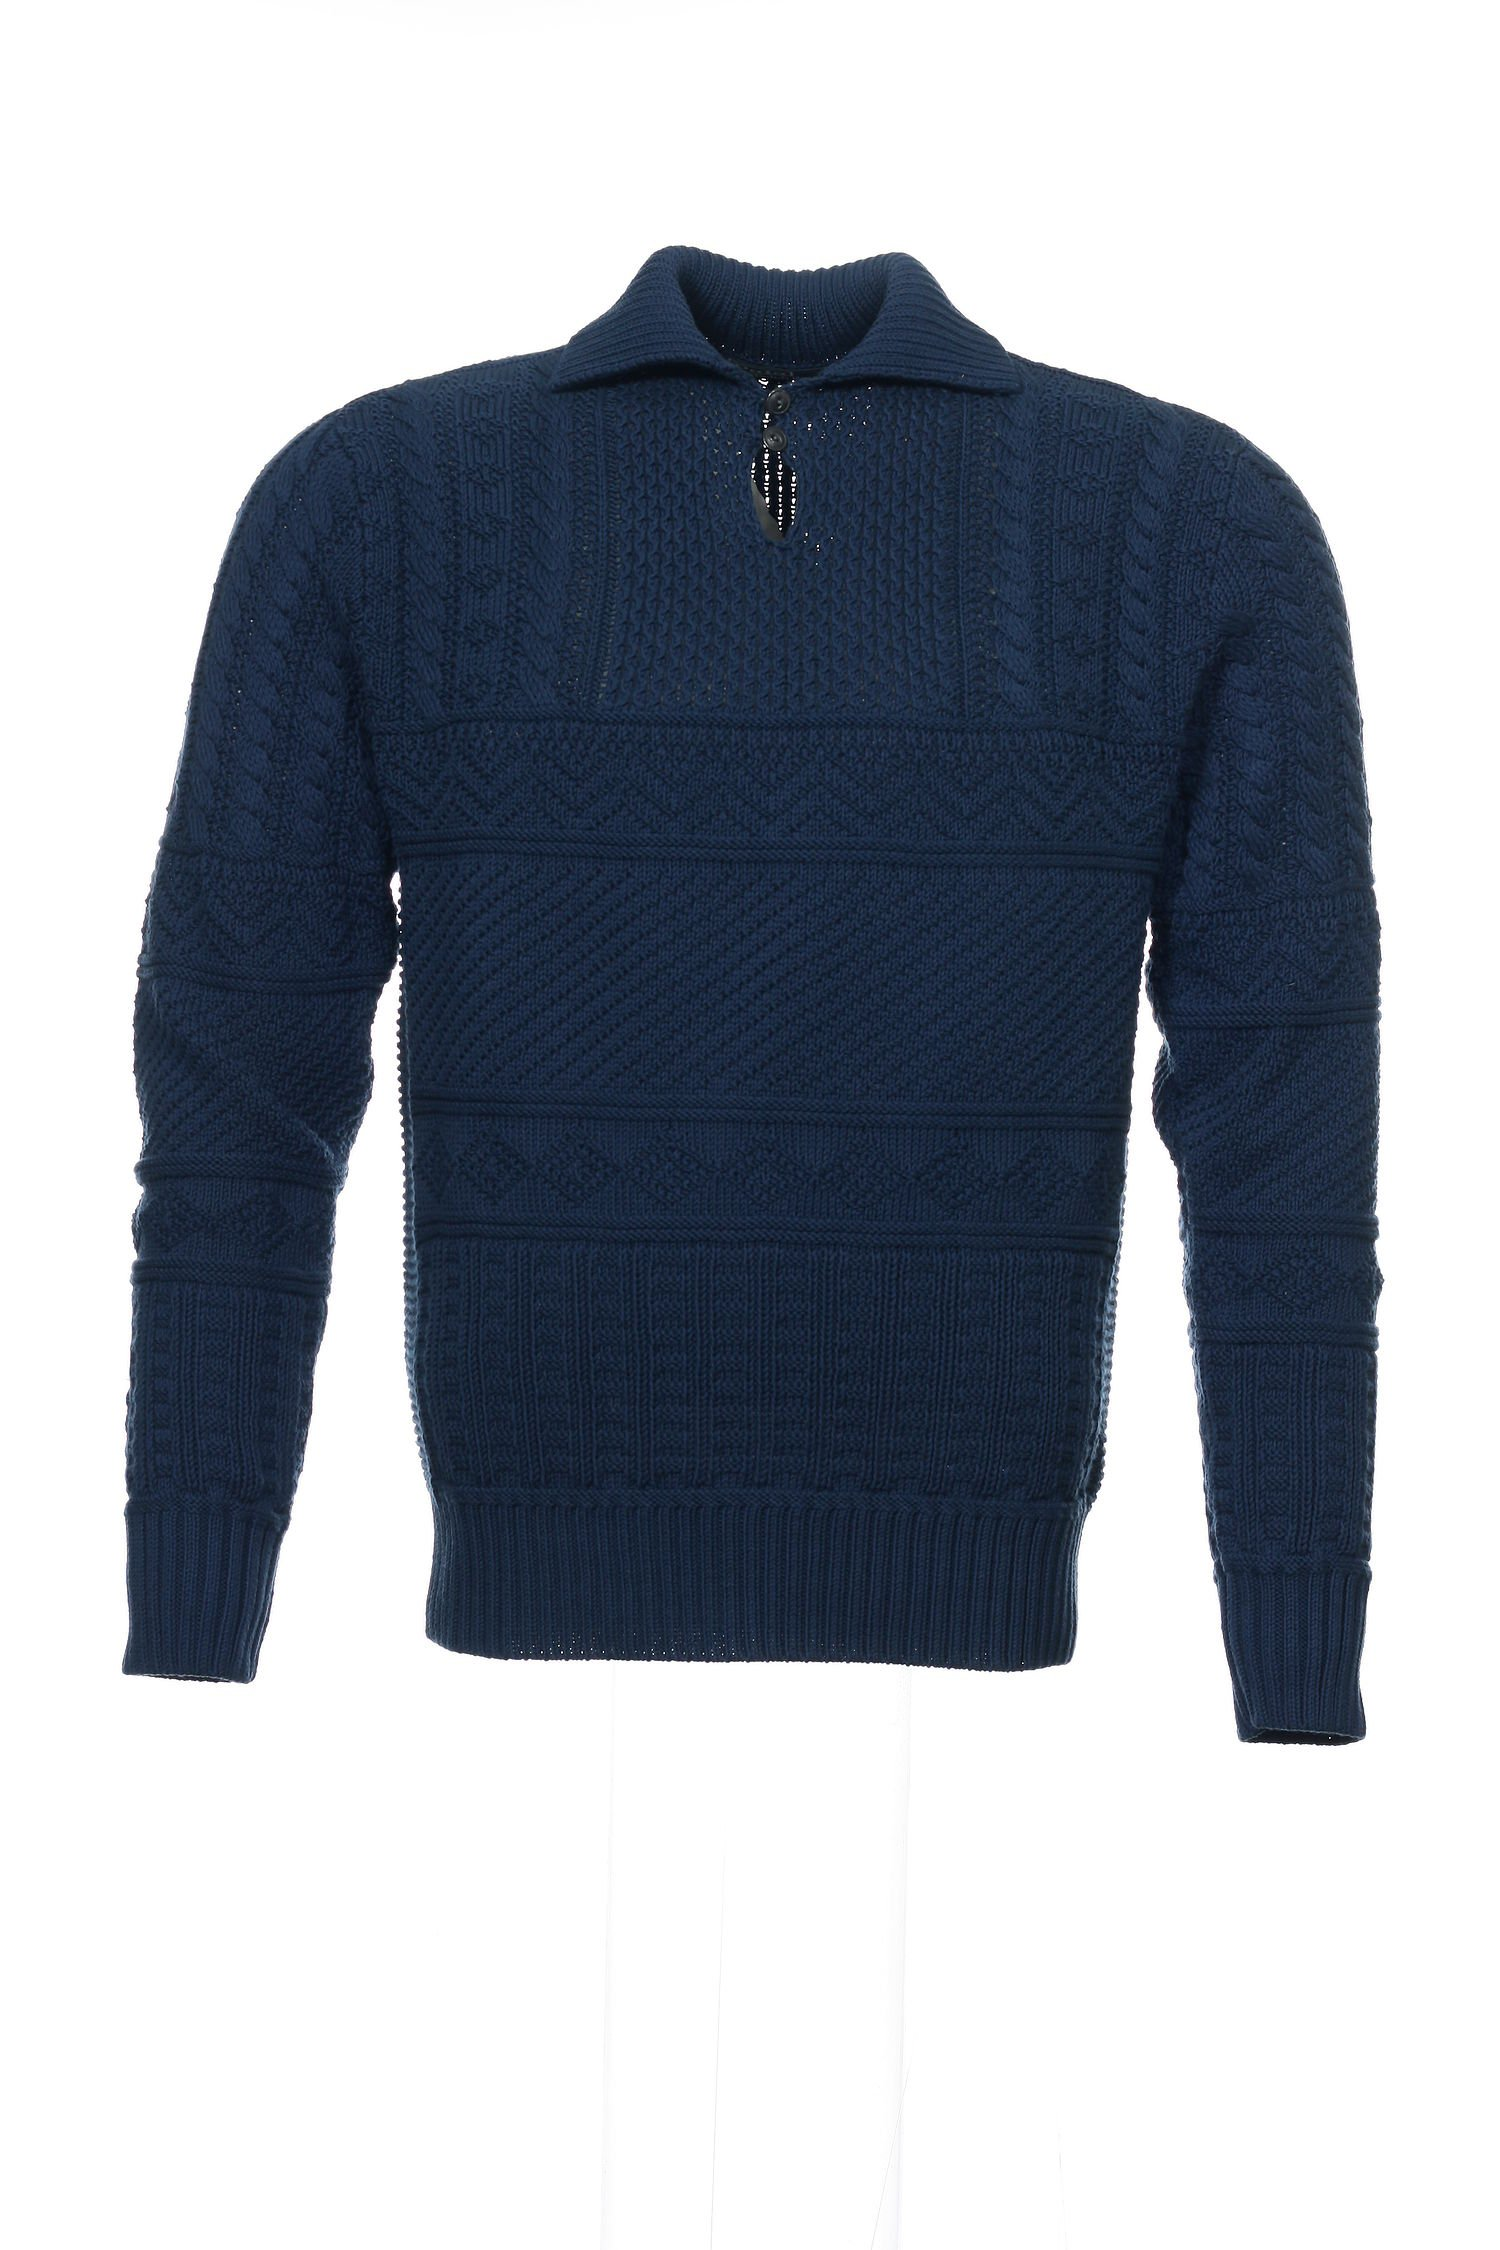 Polo by Ralph Lauren Blue Polo Sweaters , Size Large